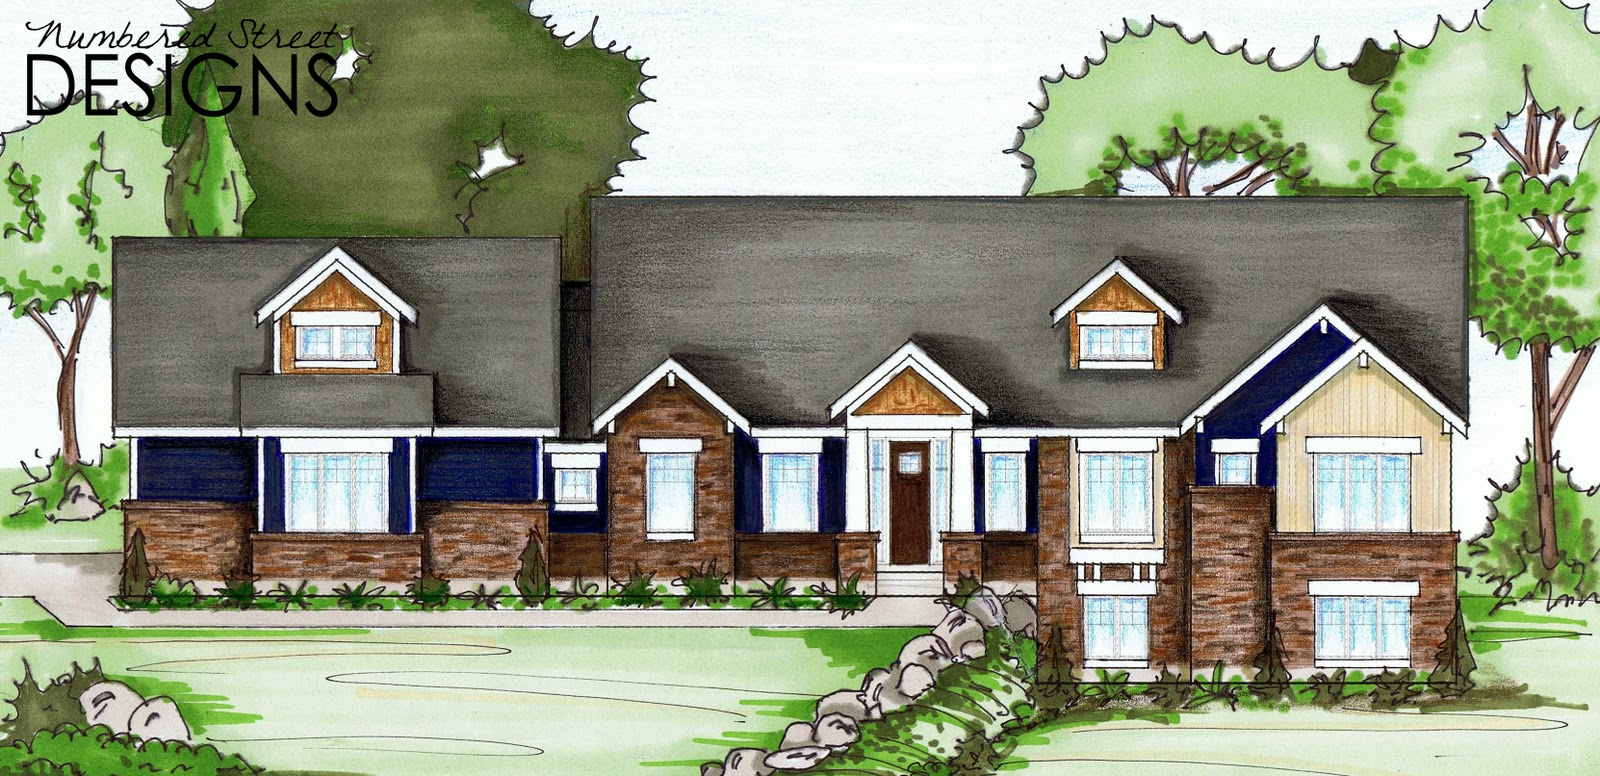 Numbered street designs personal home renderings for Personal home design